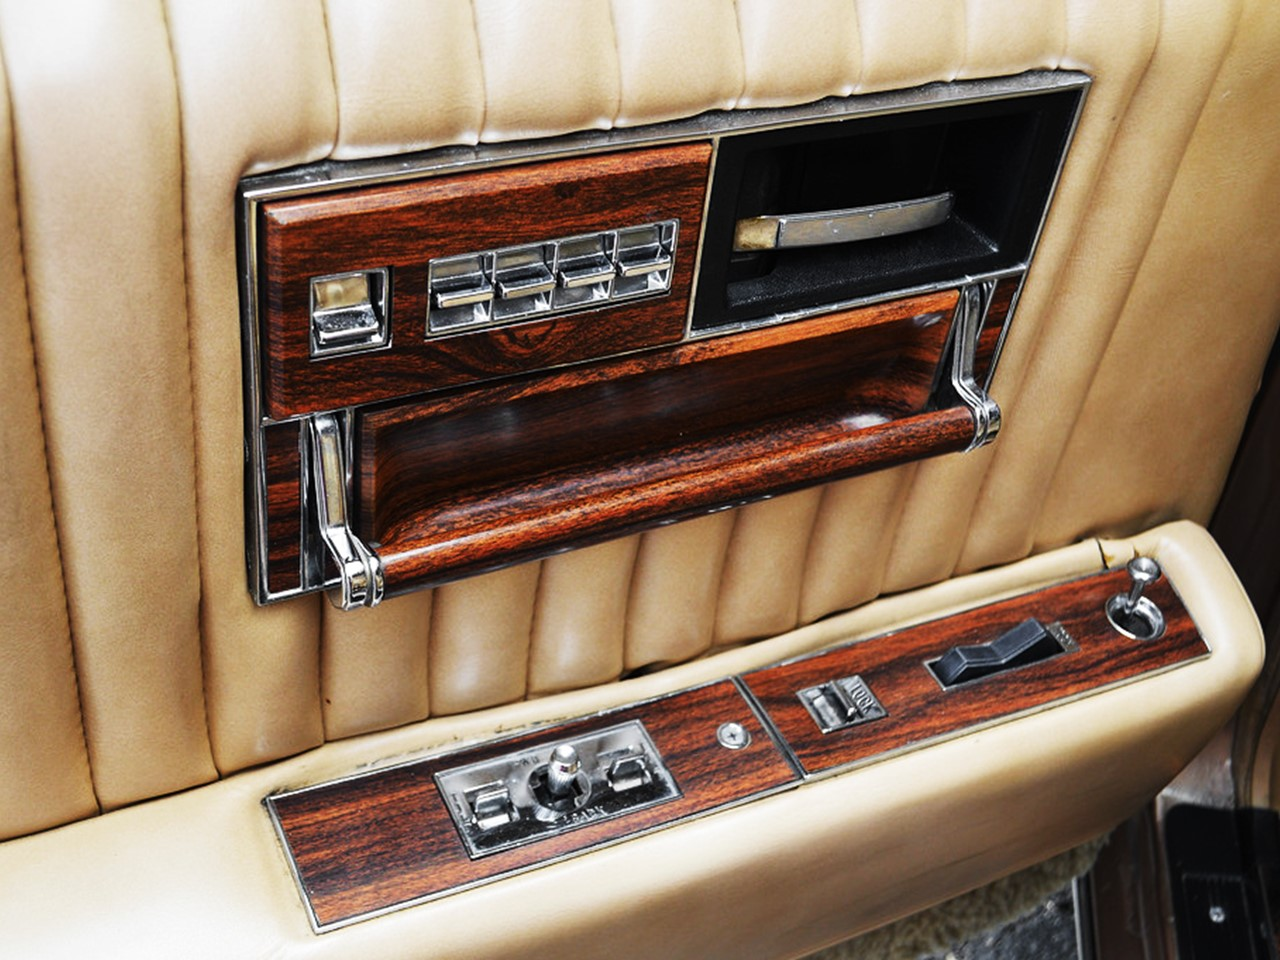 1976 Cadillac Seville The Penalty Of Leadership Notoriousluxury 1978 Deville Interior 24